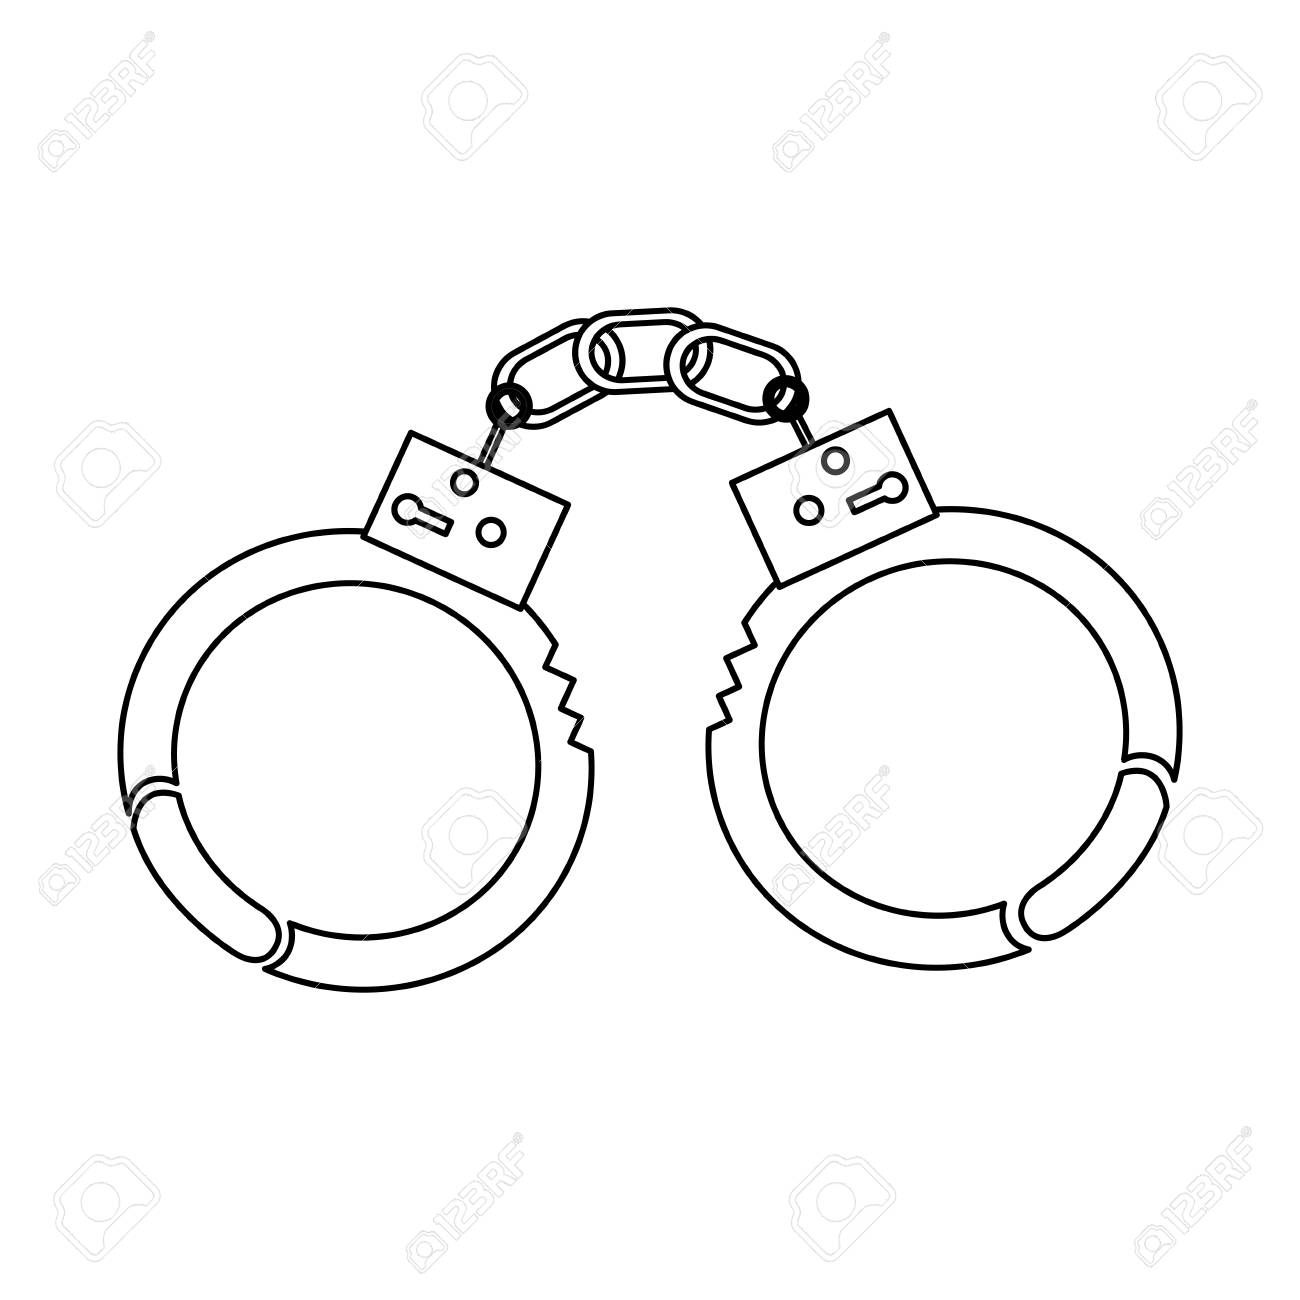 png black and white library Handcuffs clipart tool. Collection of free handcuffed